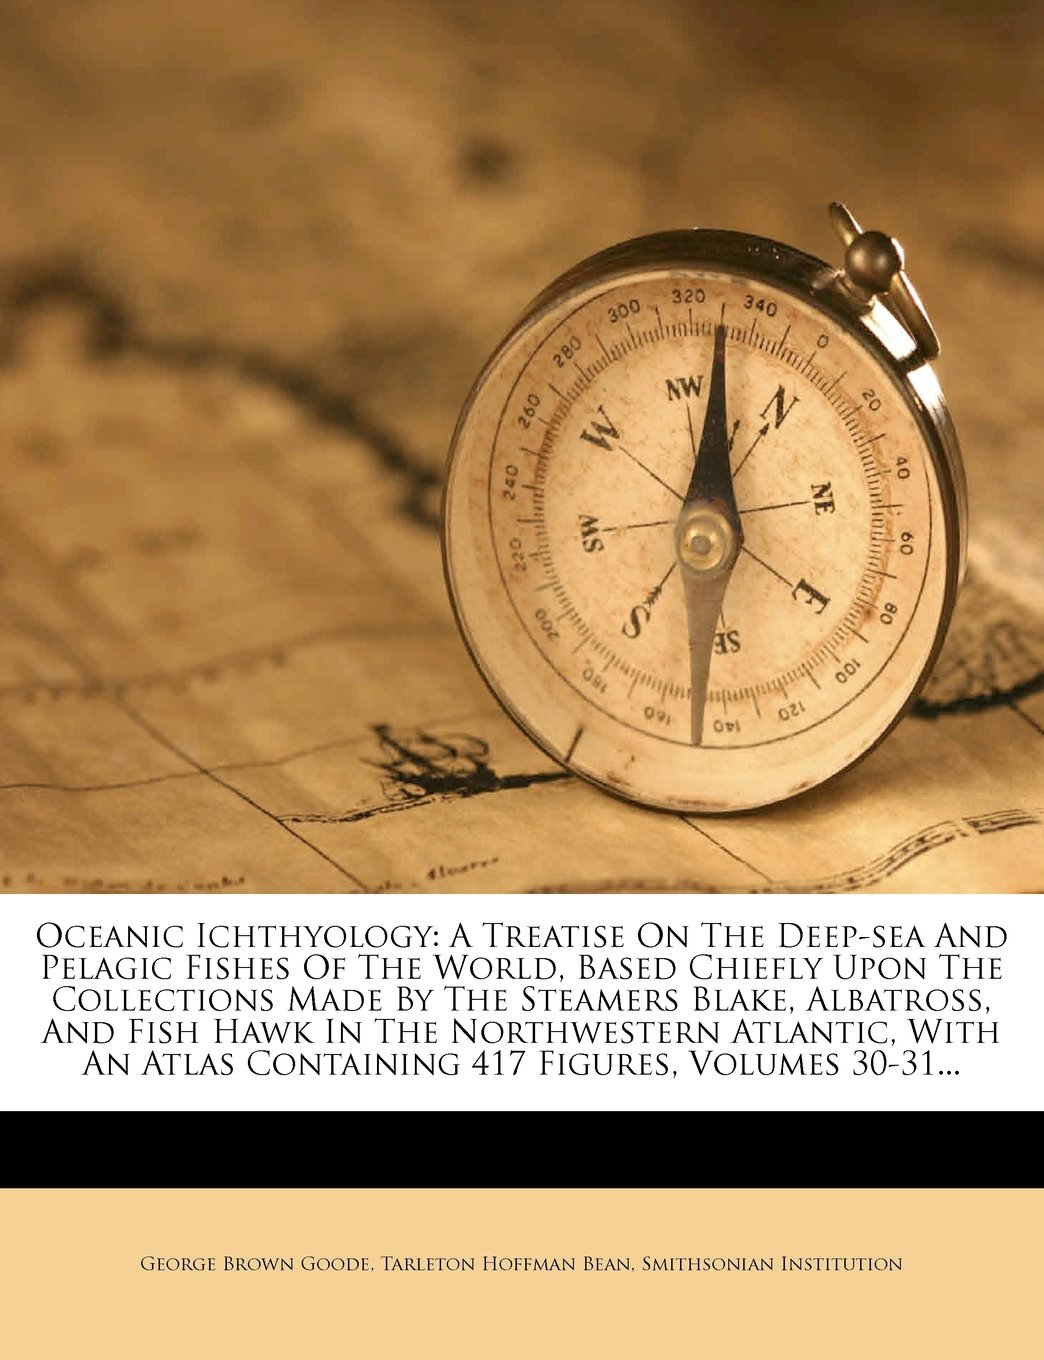 Download Oceanic Ichthyology: A Treatise On The Deep-sea And Pelagic Fishes Of The World, Based Chiefly Upon The Collections Made By The Steamers Blake, ... Containing 417 Figures, Volumes 30-31... PDF